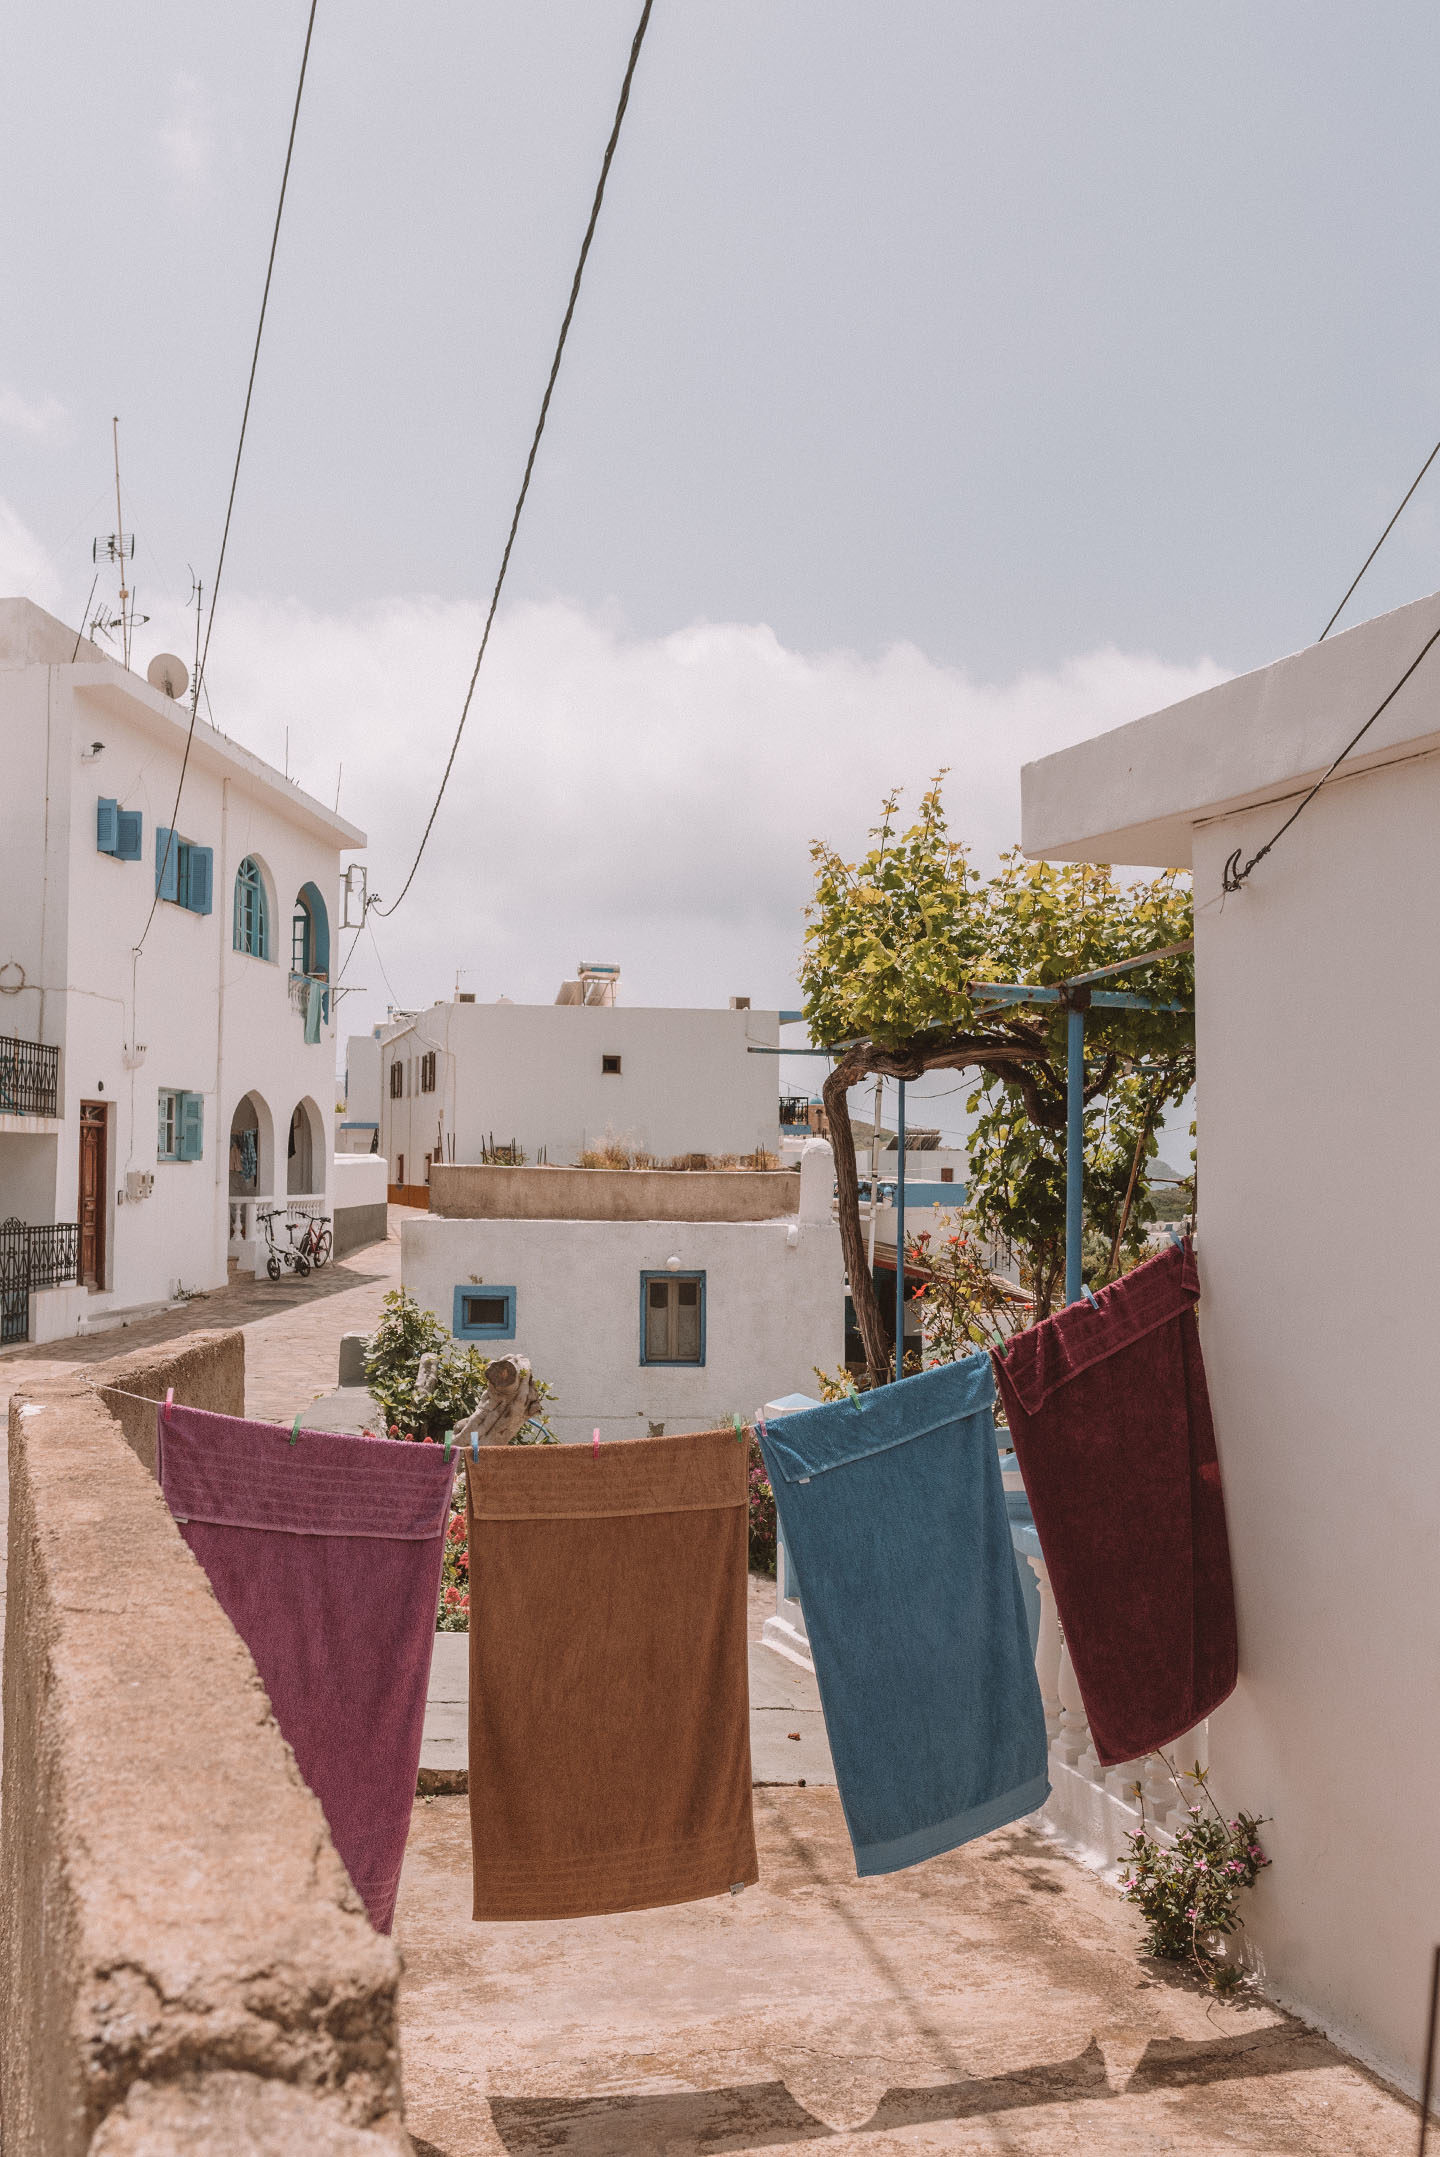 Lipsi Greece Laundry Day